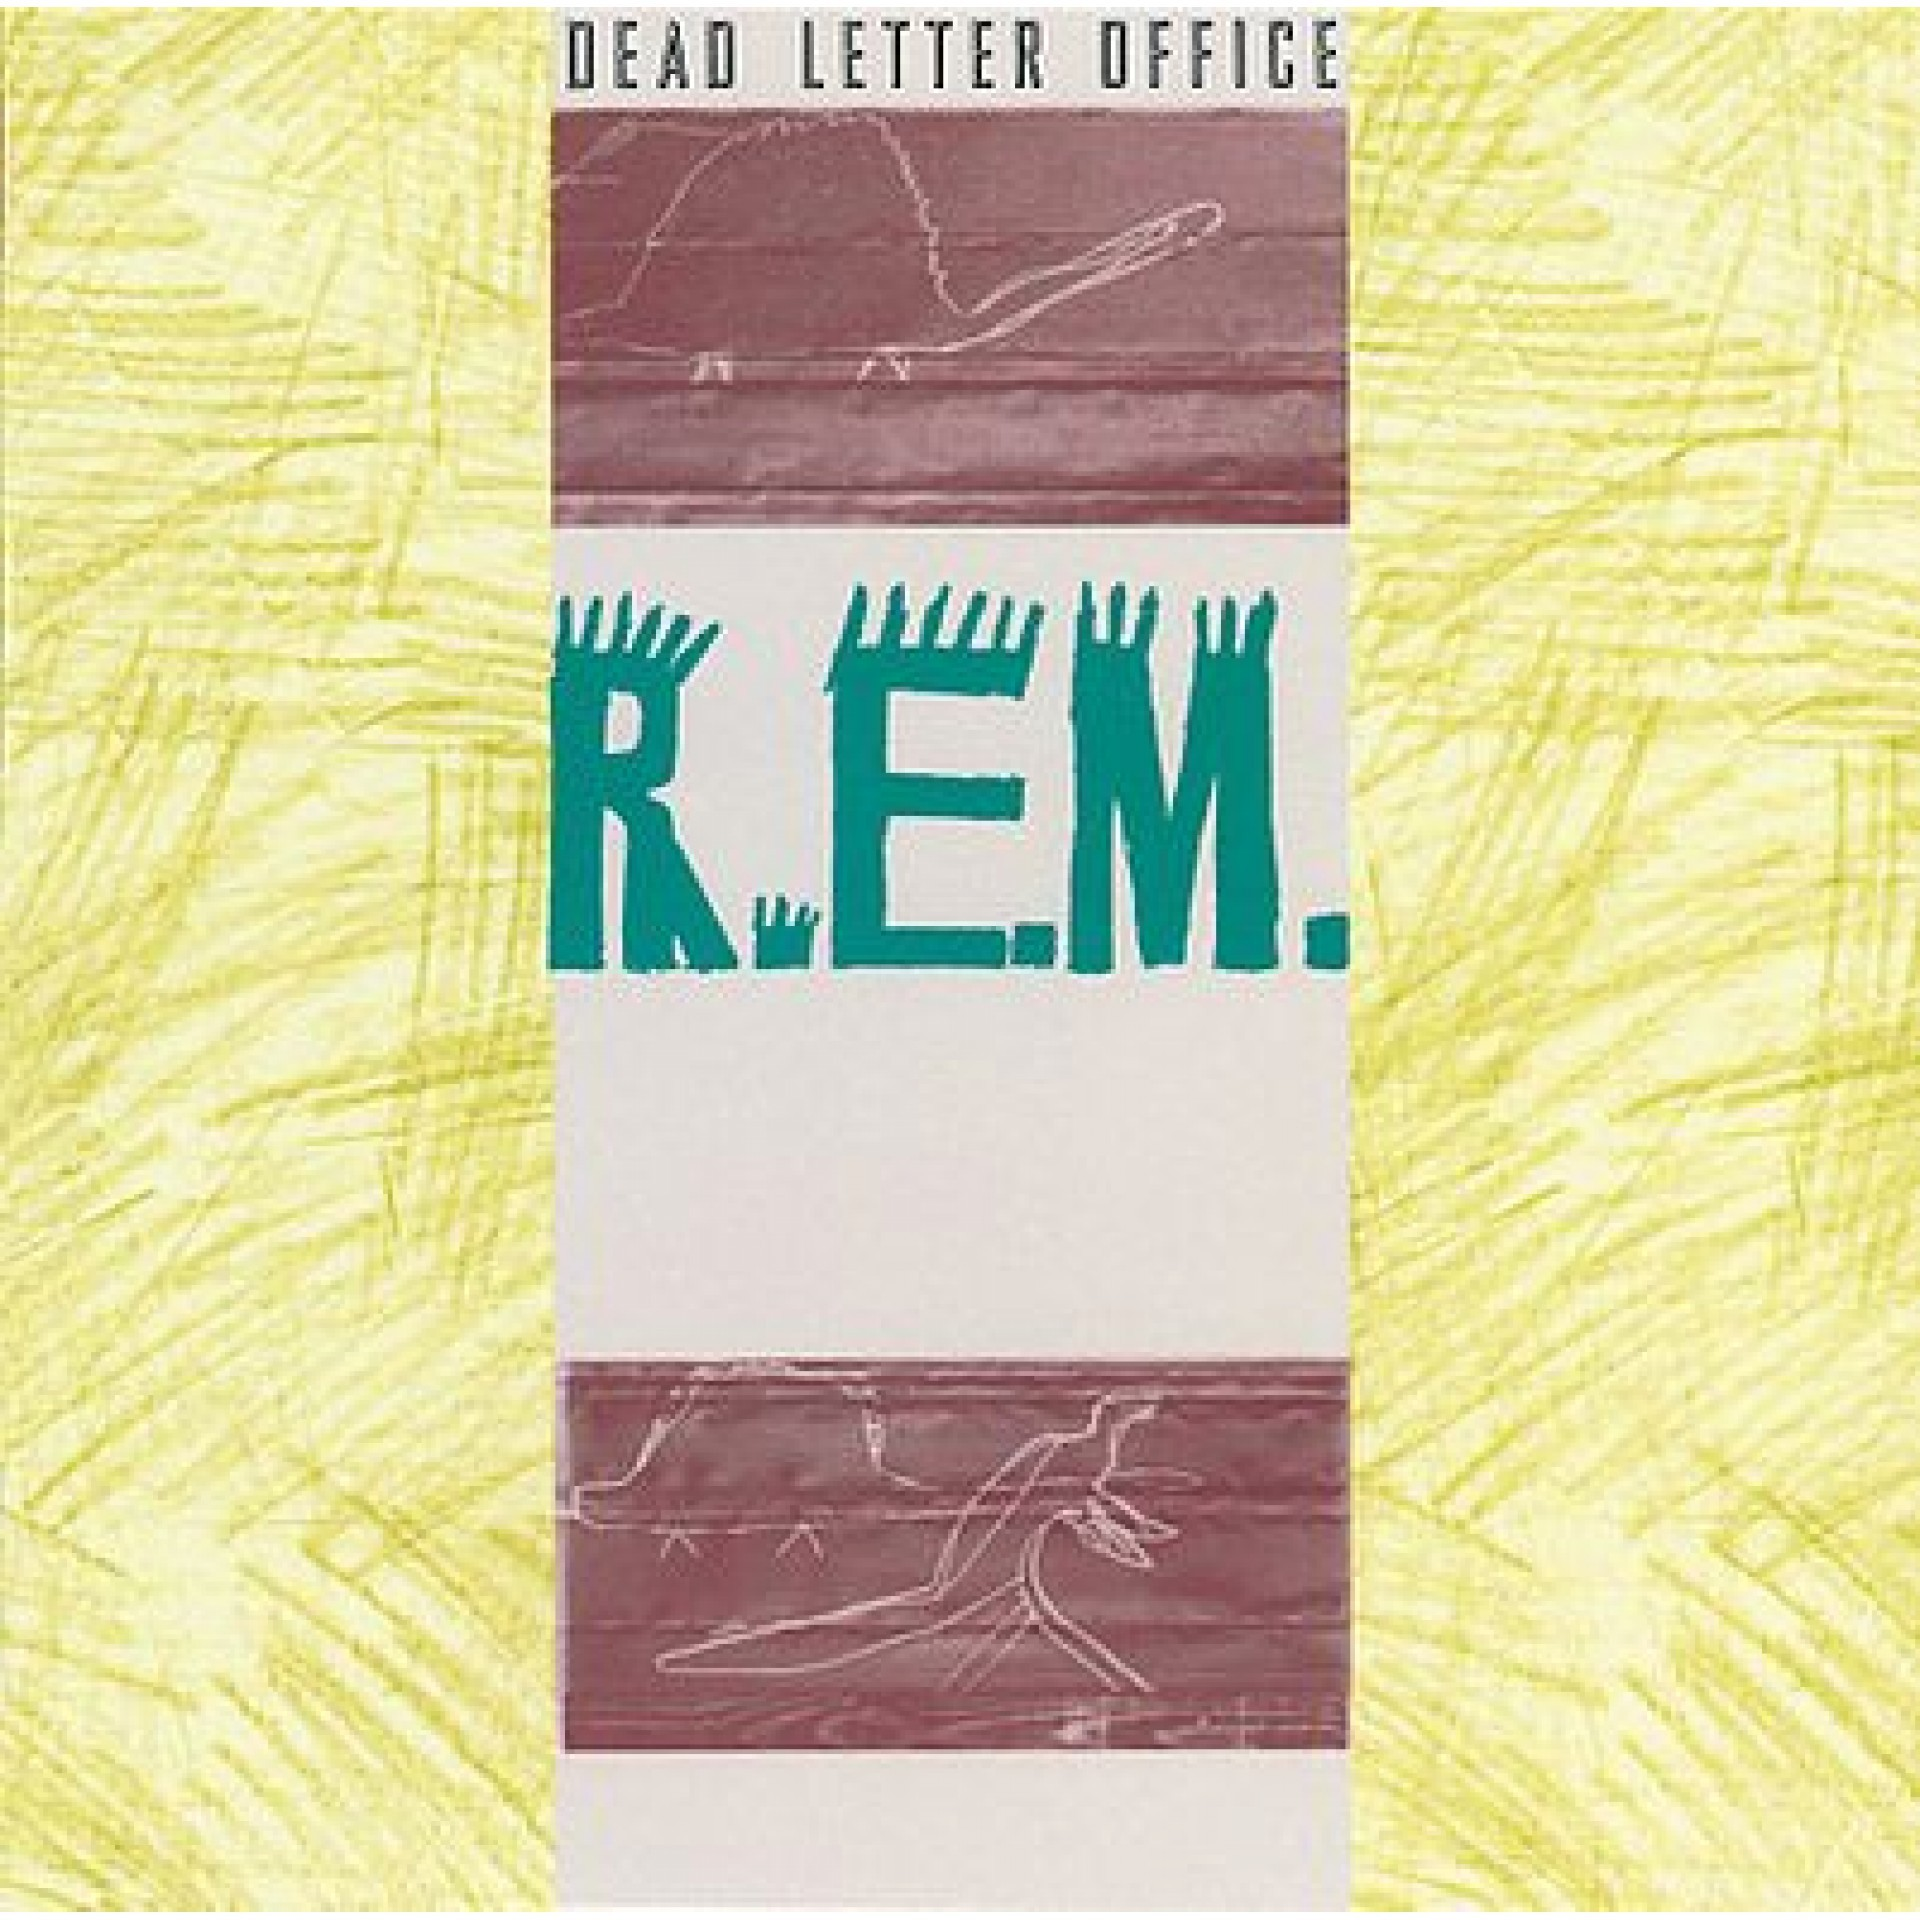 R.E.M. - Dead Letter Office LP